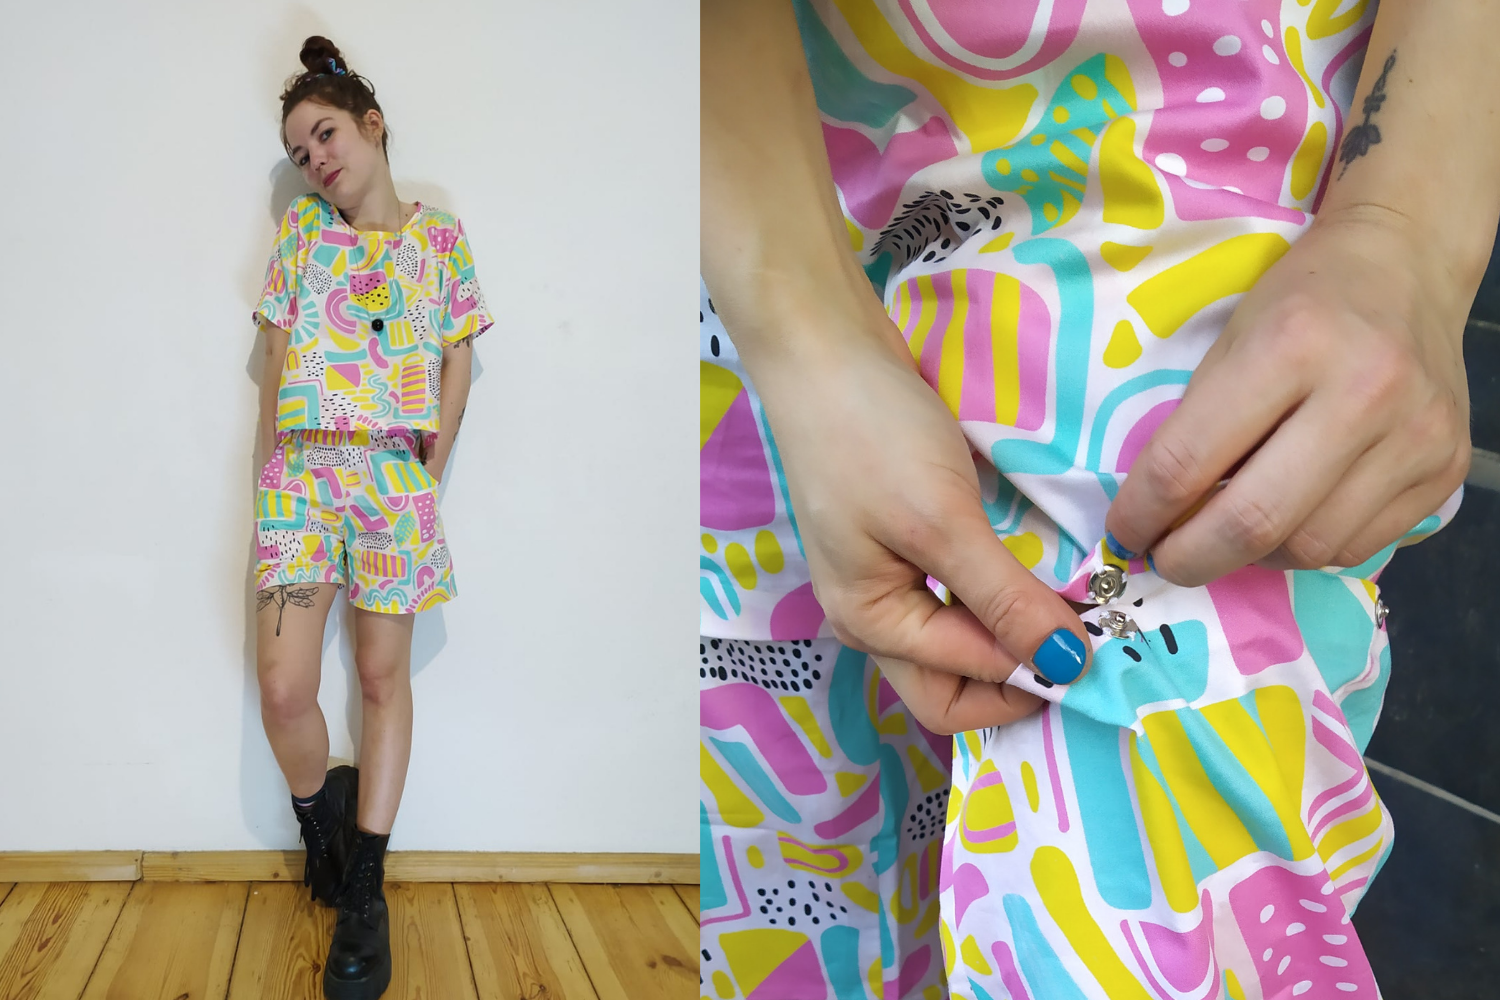 Model wearing multicolored loungewear set with pants and shirt